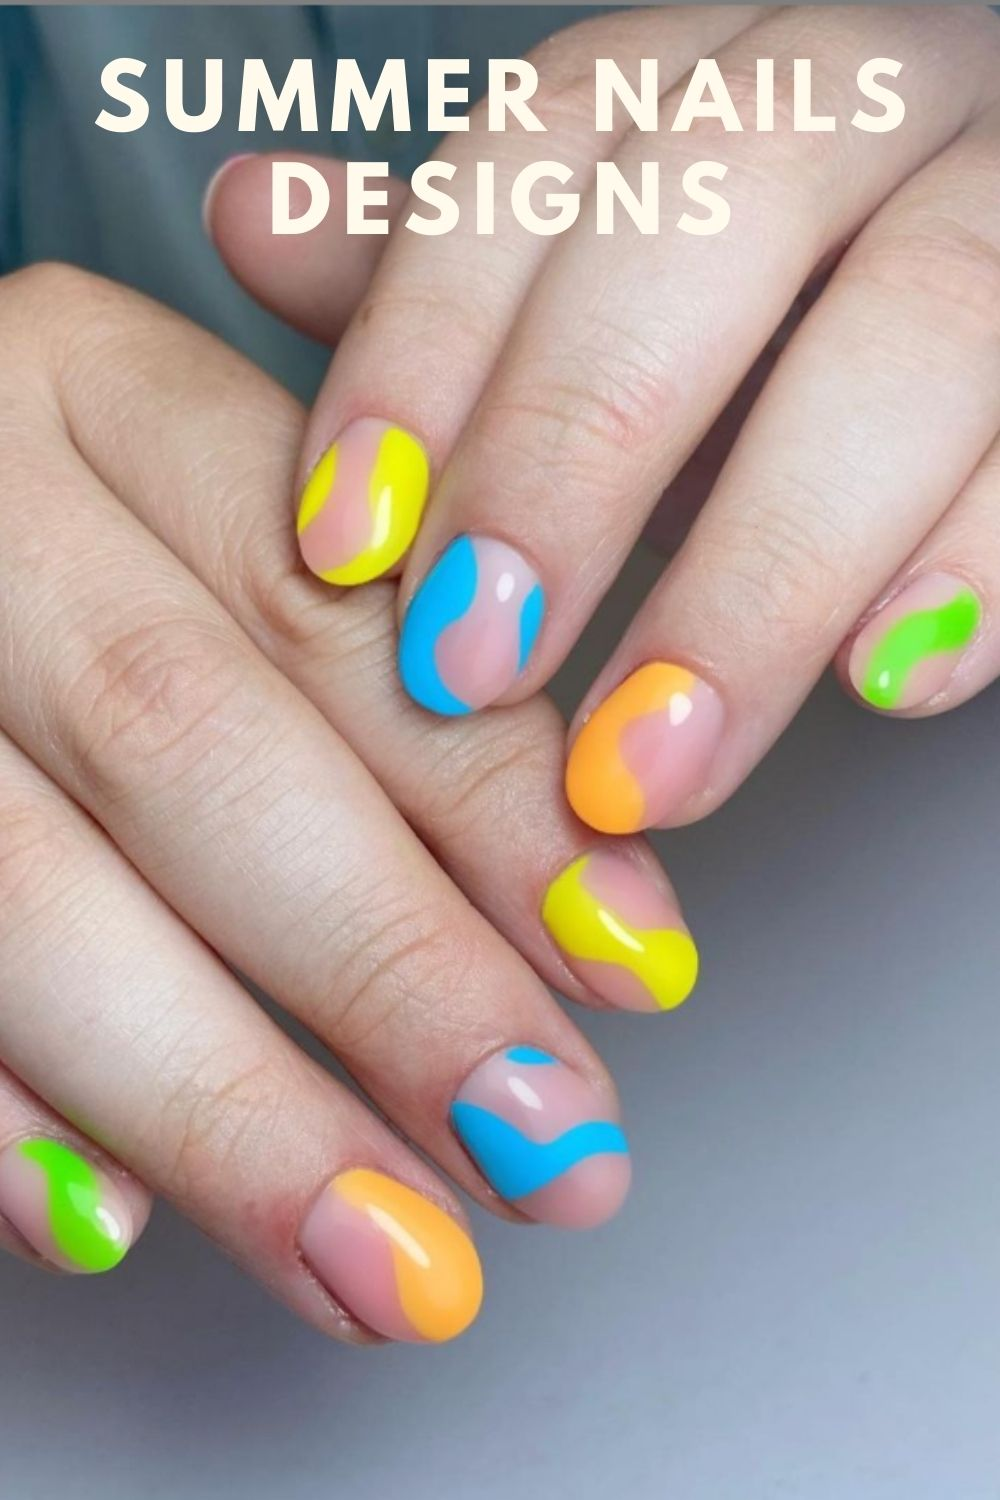 Yellow and light blue short nails